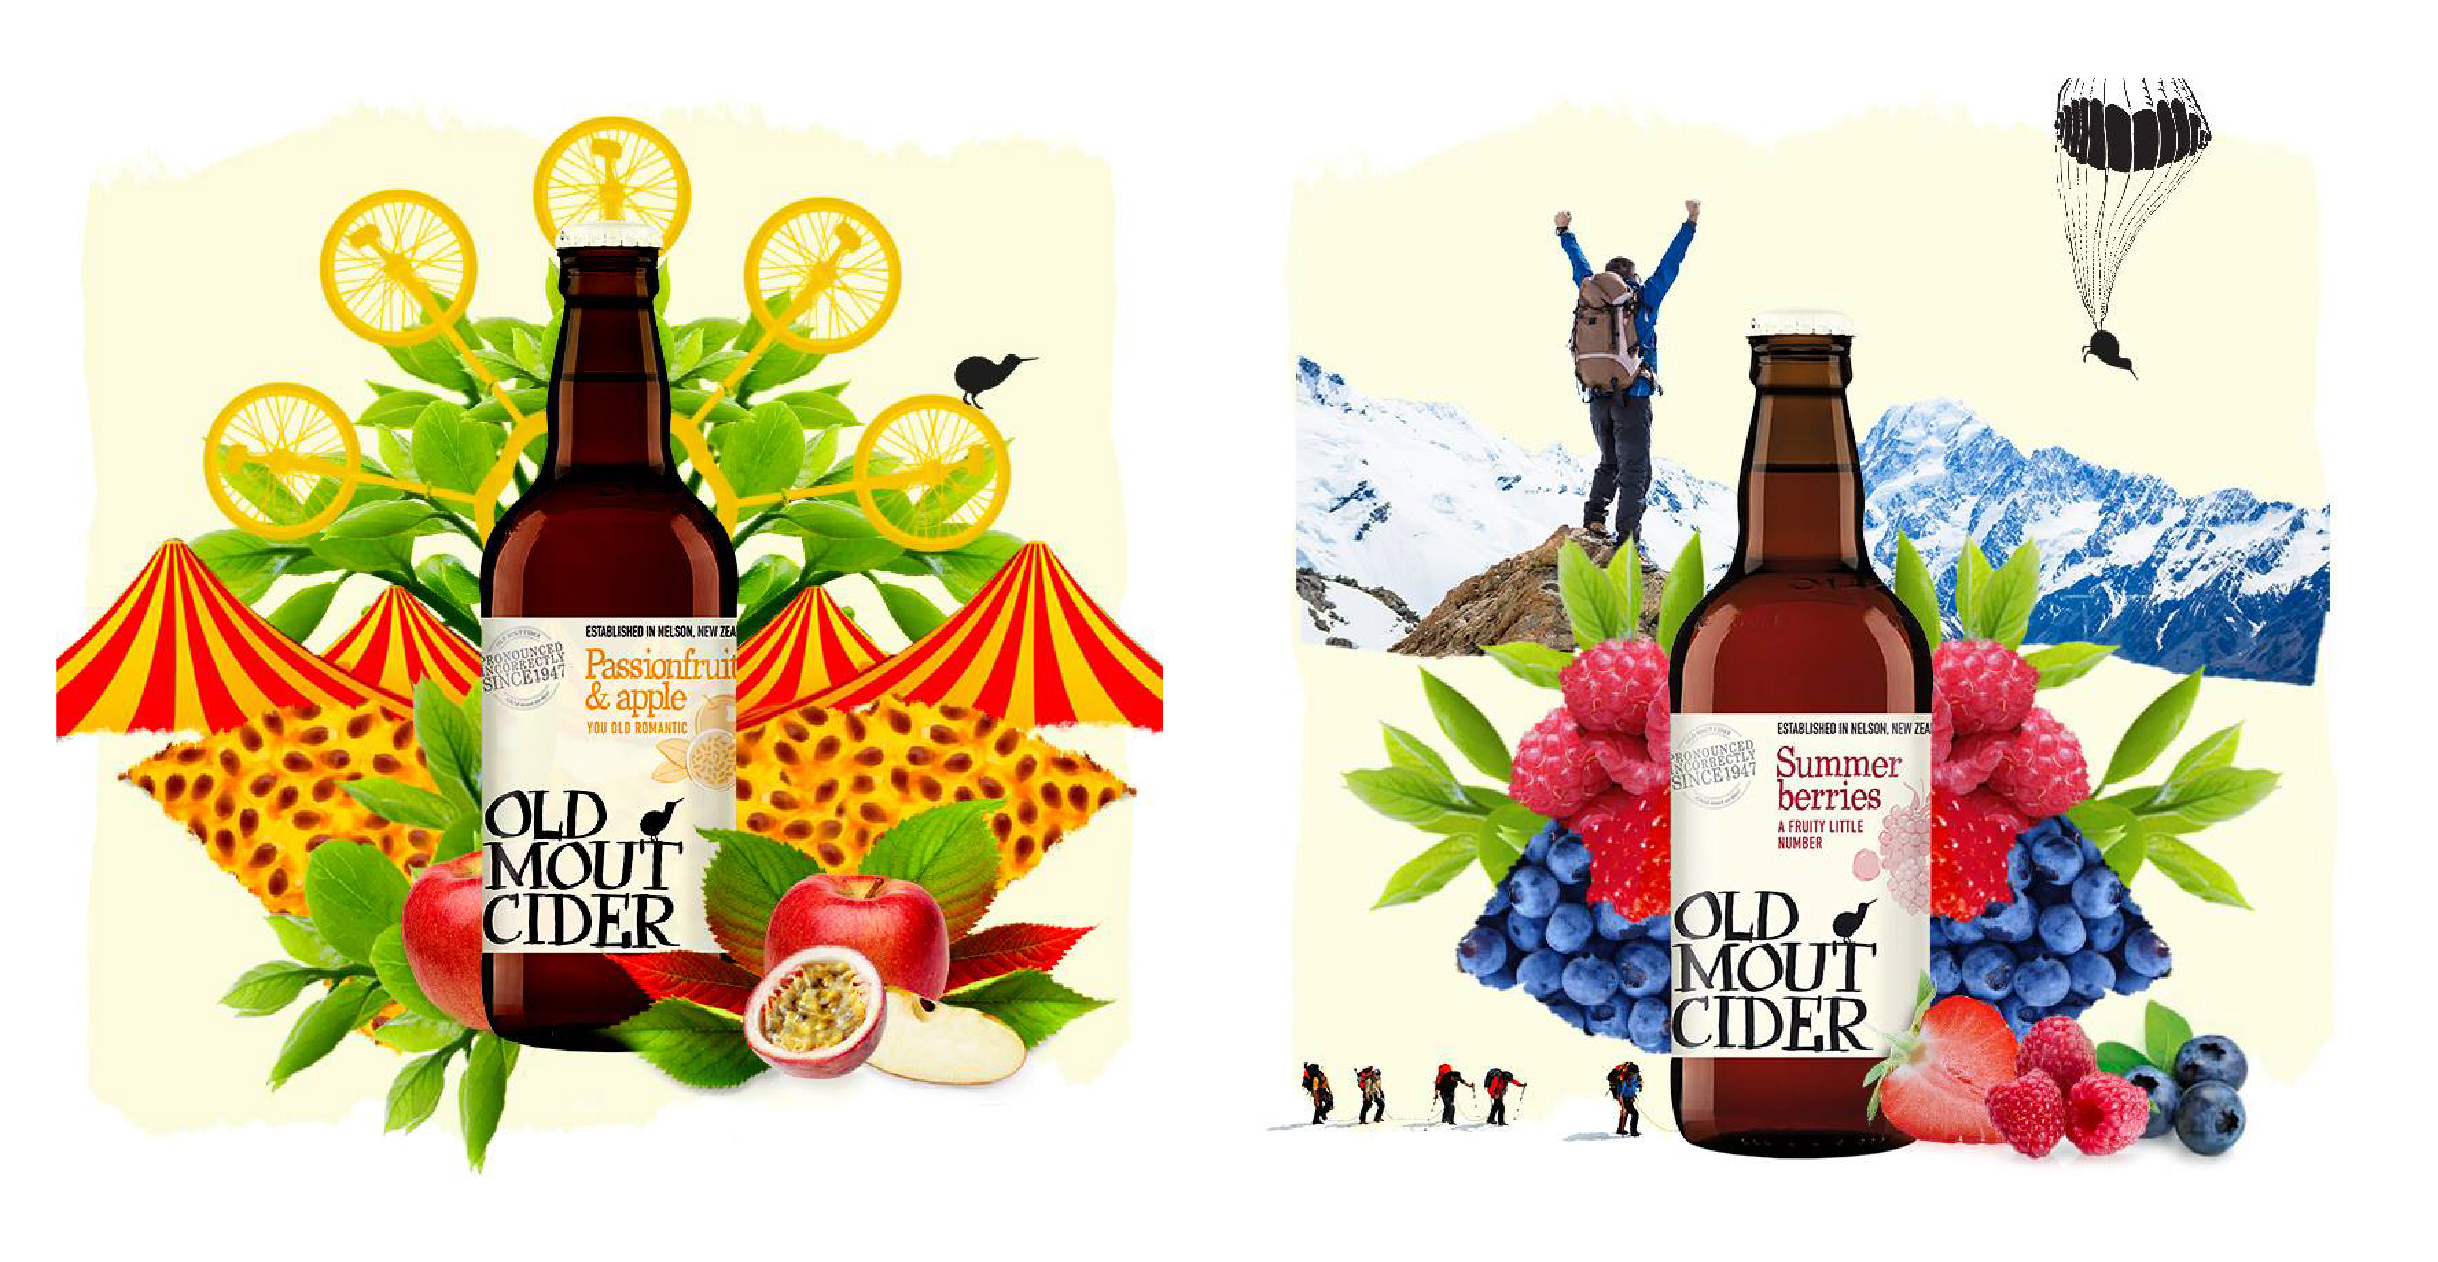 Social media collages for Old Mout Cider launch in the UK